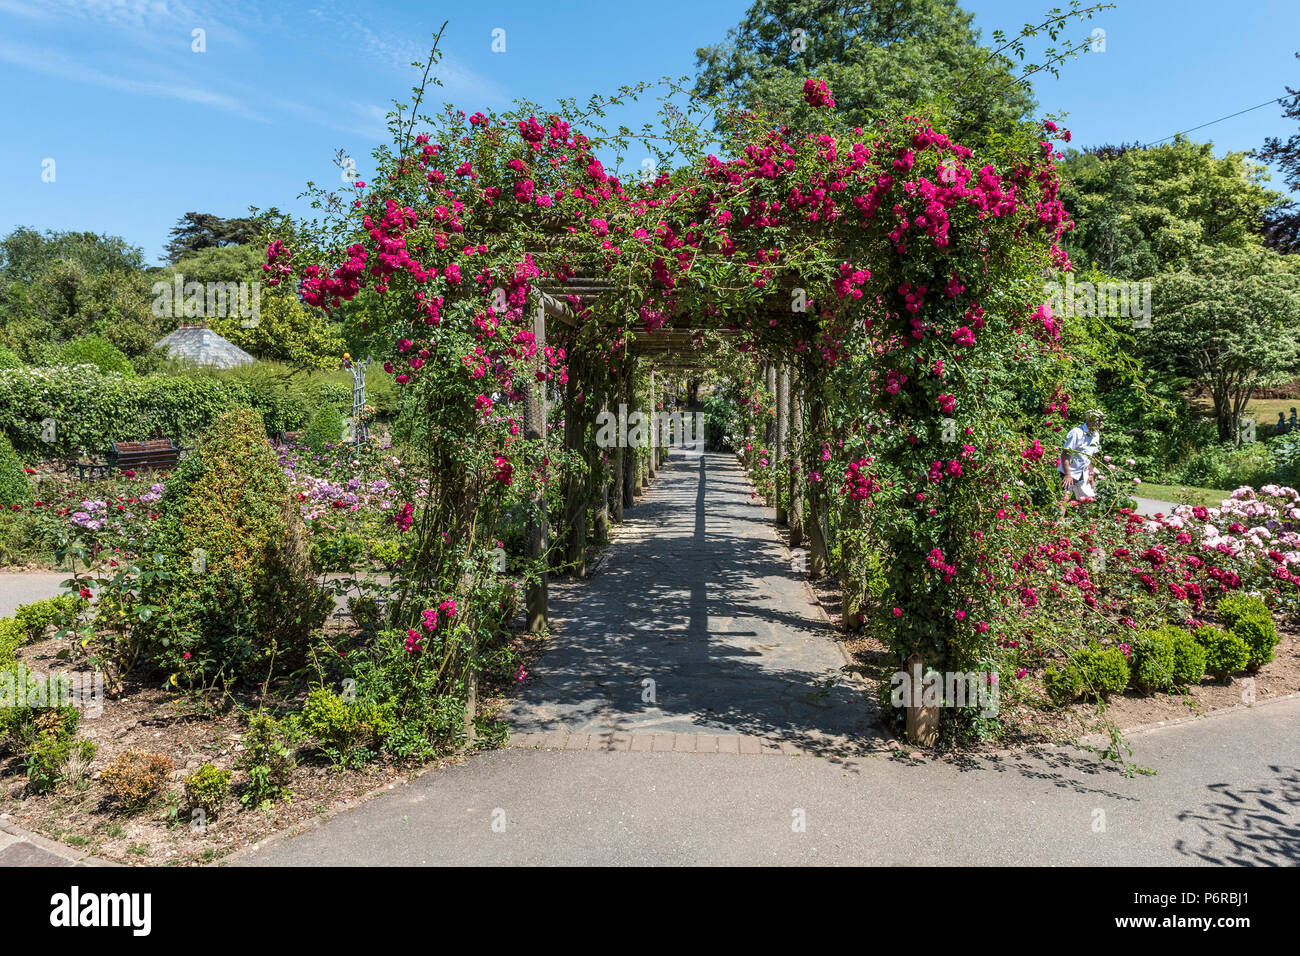 A pergola covered in climbing roses in the award winning Rose Garden in Trenance Park in Newquay in Cornwall - Stock Image